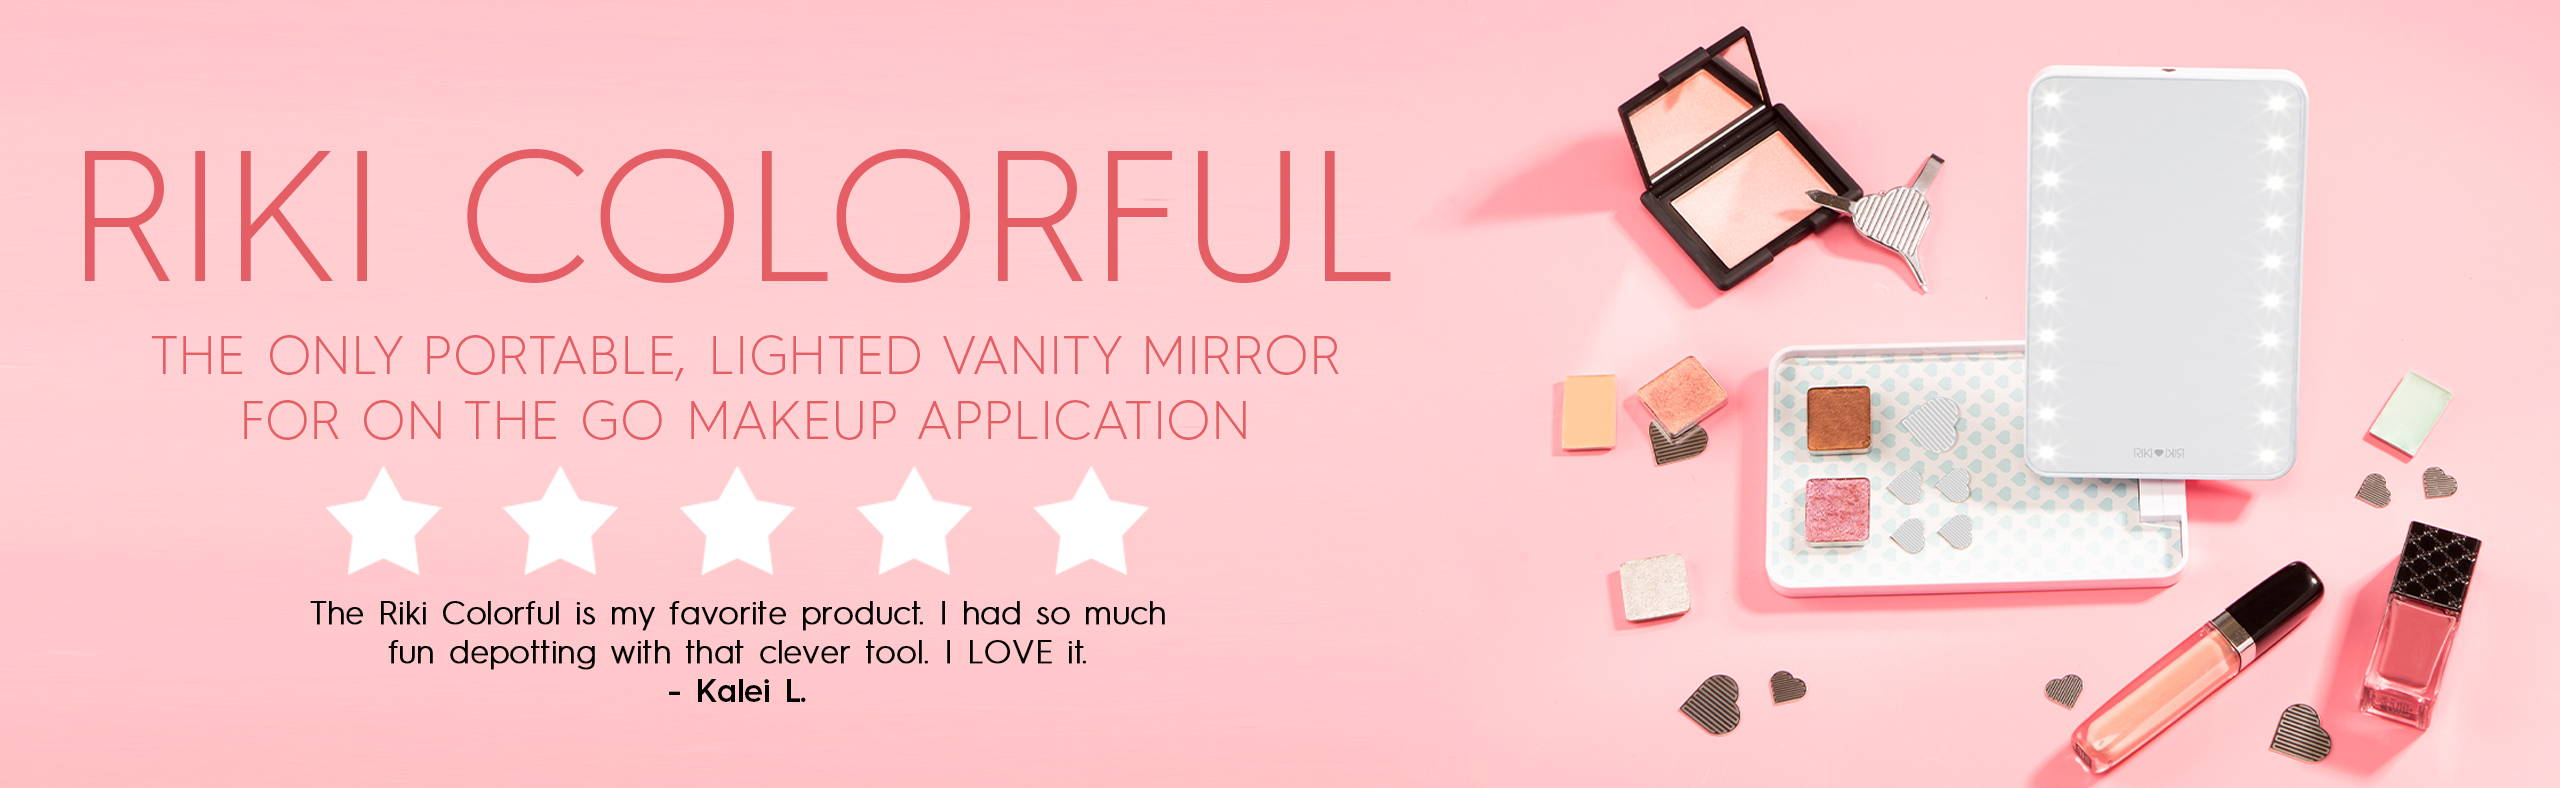 RIKI COLORFUL - the best-rated lighted travel makeup mirror specification page